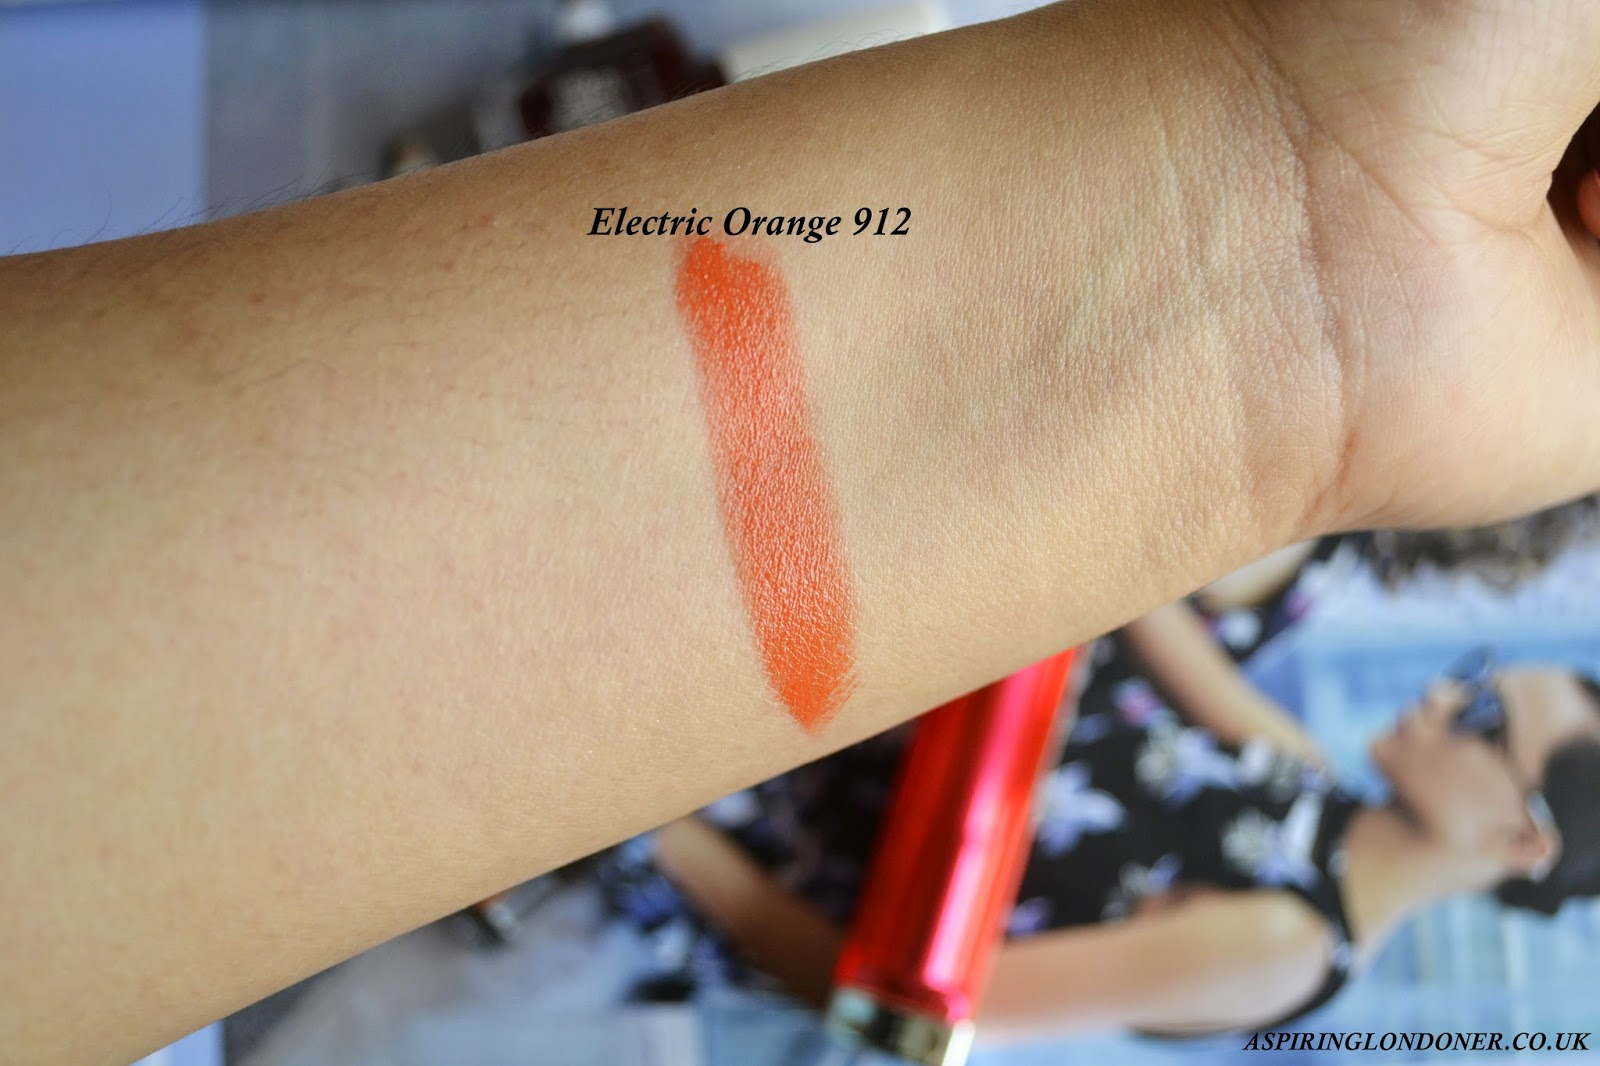 Maybelline Color Sensational Vivids Lipstick Electric Orange 912 Swatch - Aspiring Londoner